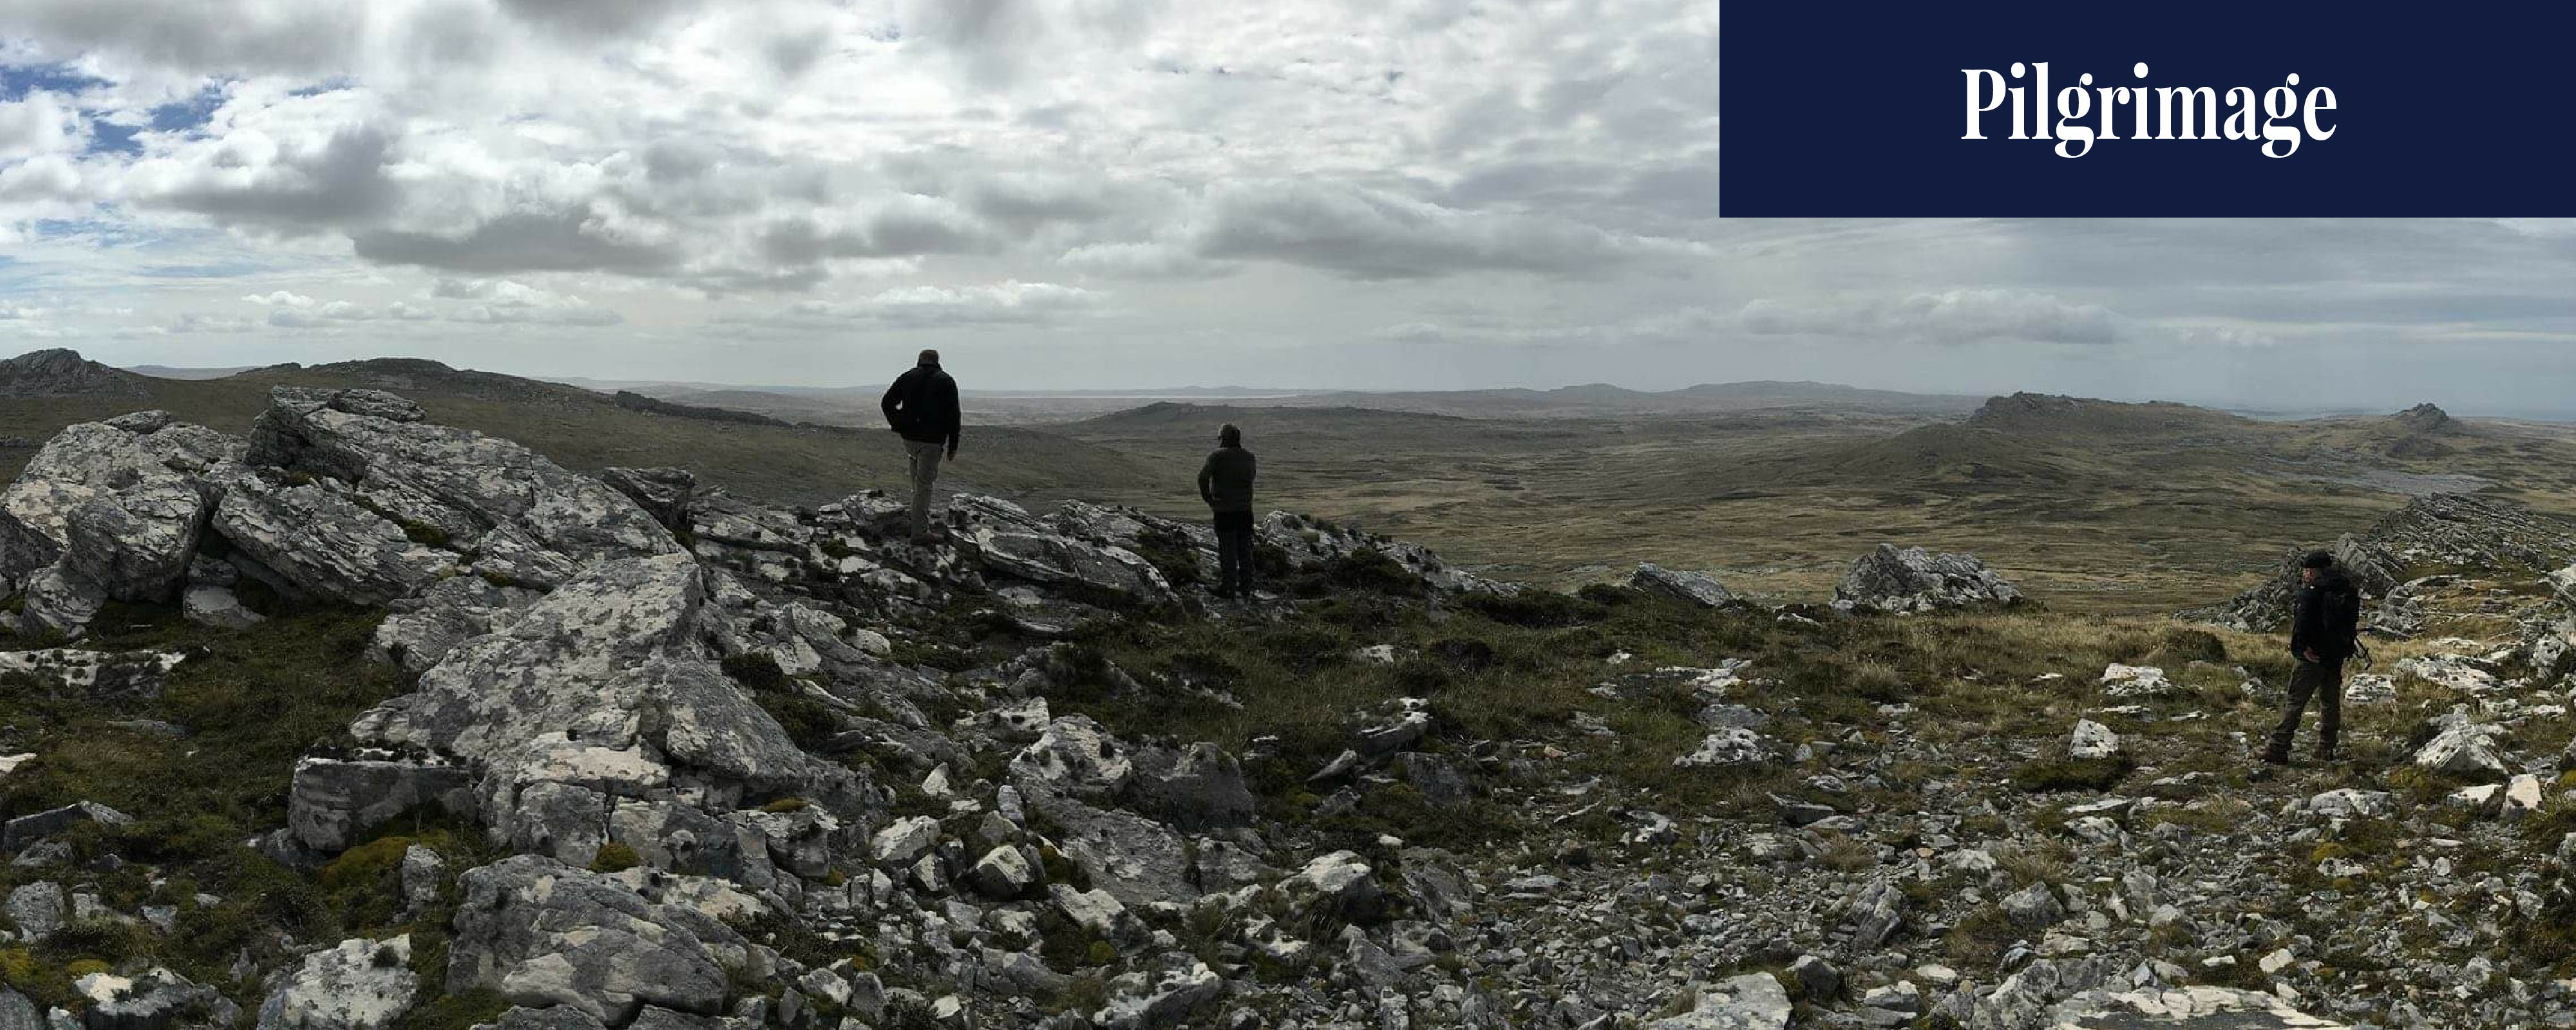 Photogtraph taken by T McHugh of J McLachlan and M Weatherley from Mount Harriet, Falkland Islands. J McLachlan and M Weatherley in foreground.